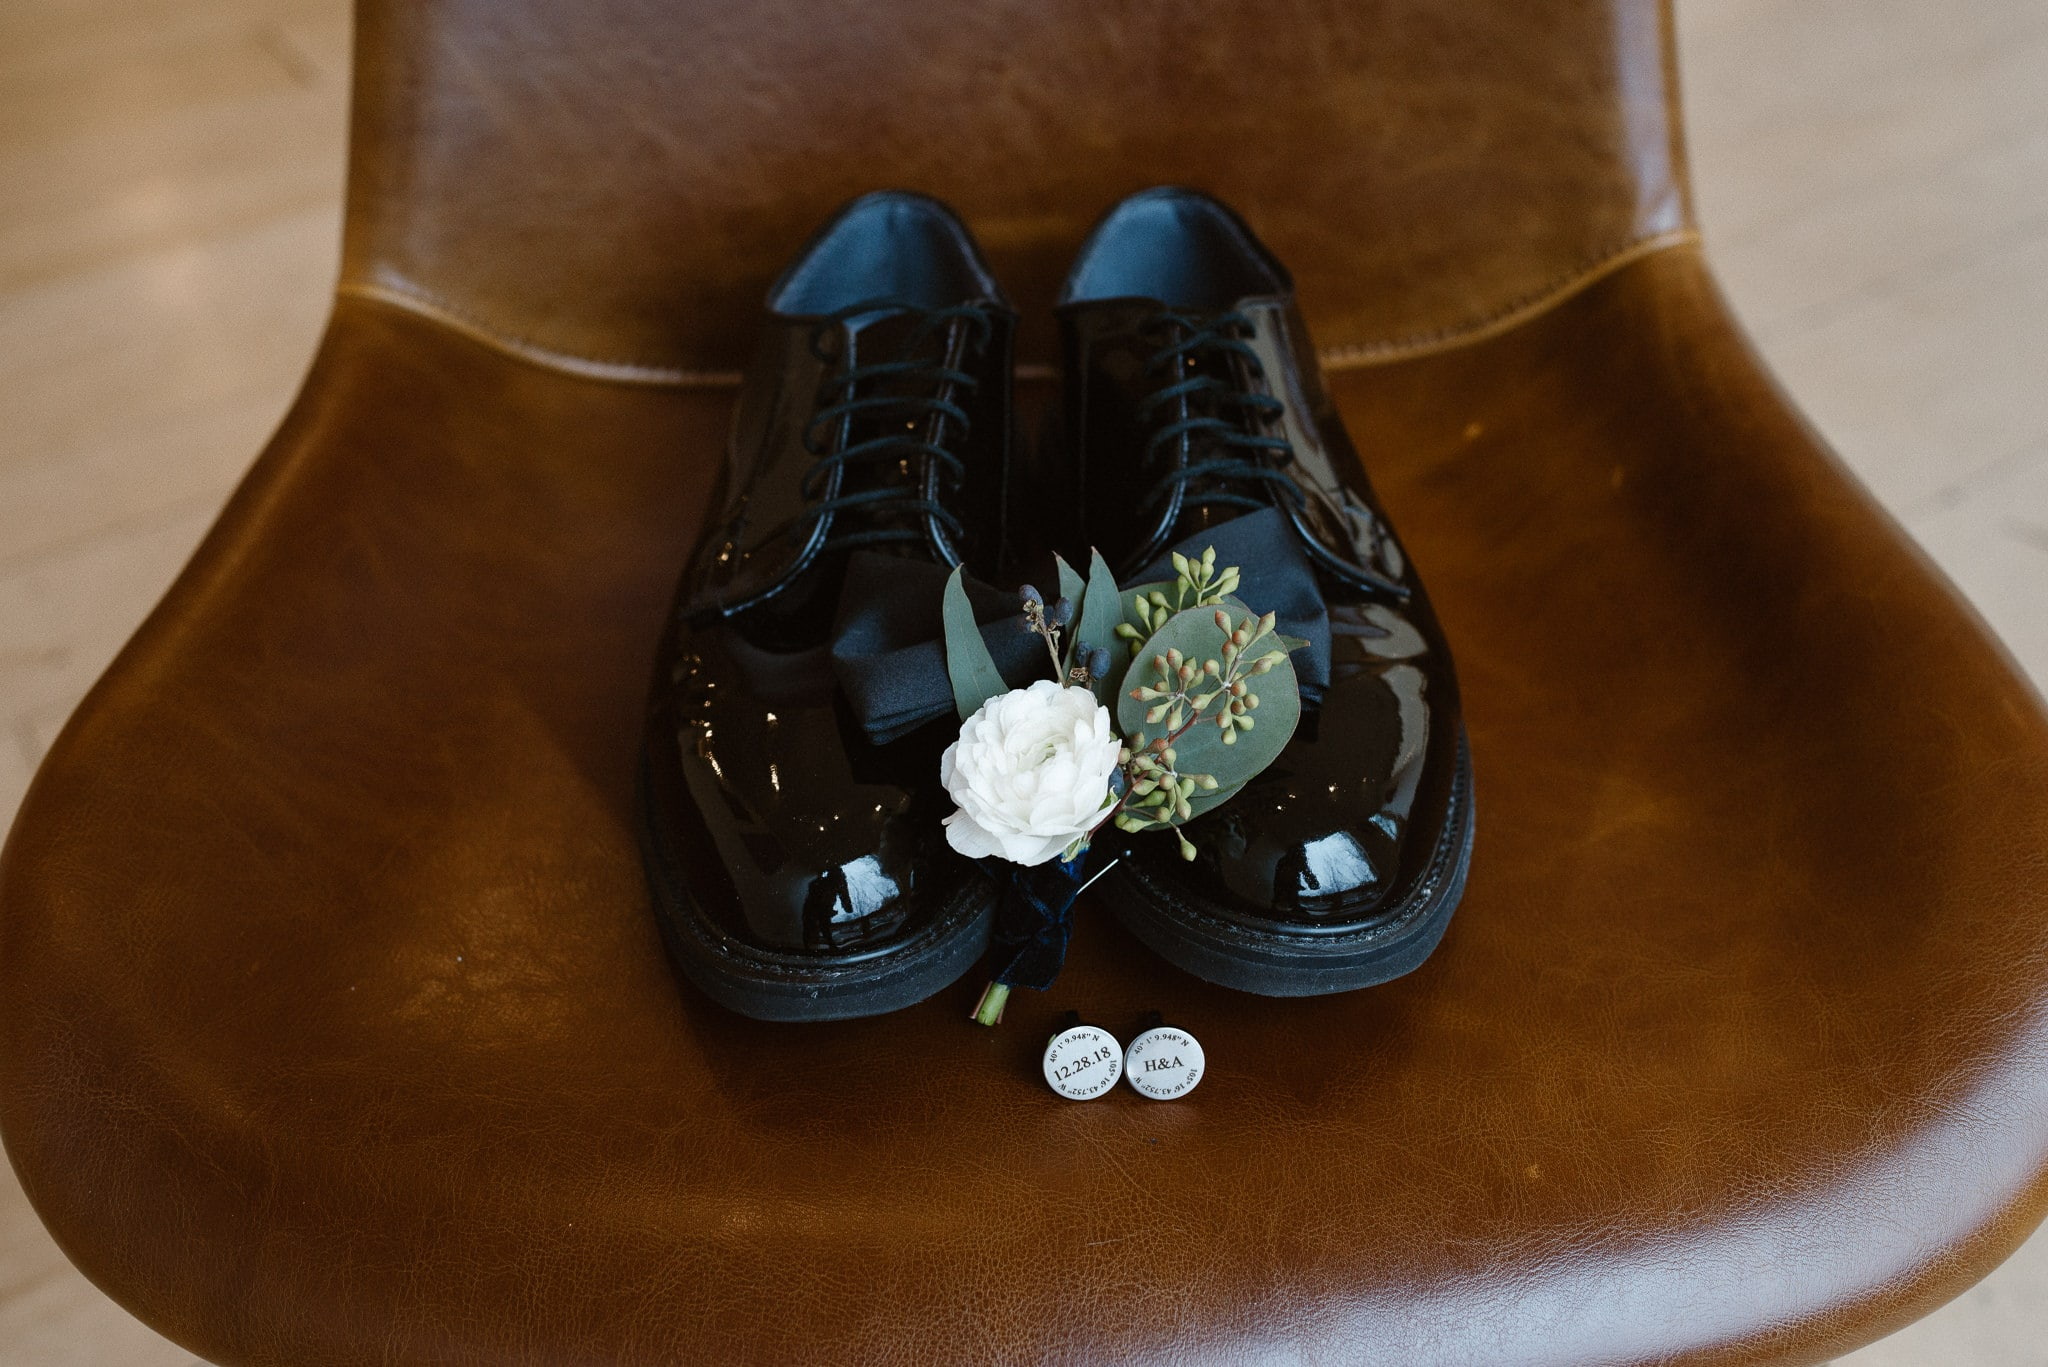 Rembrandt Yard wedding photographer, Boulder wedding photographer, Colorado Jewish wedding, groom's shoes and boutonniere, wedding details